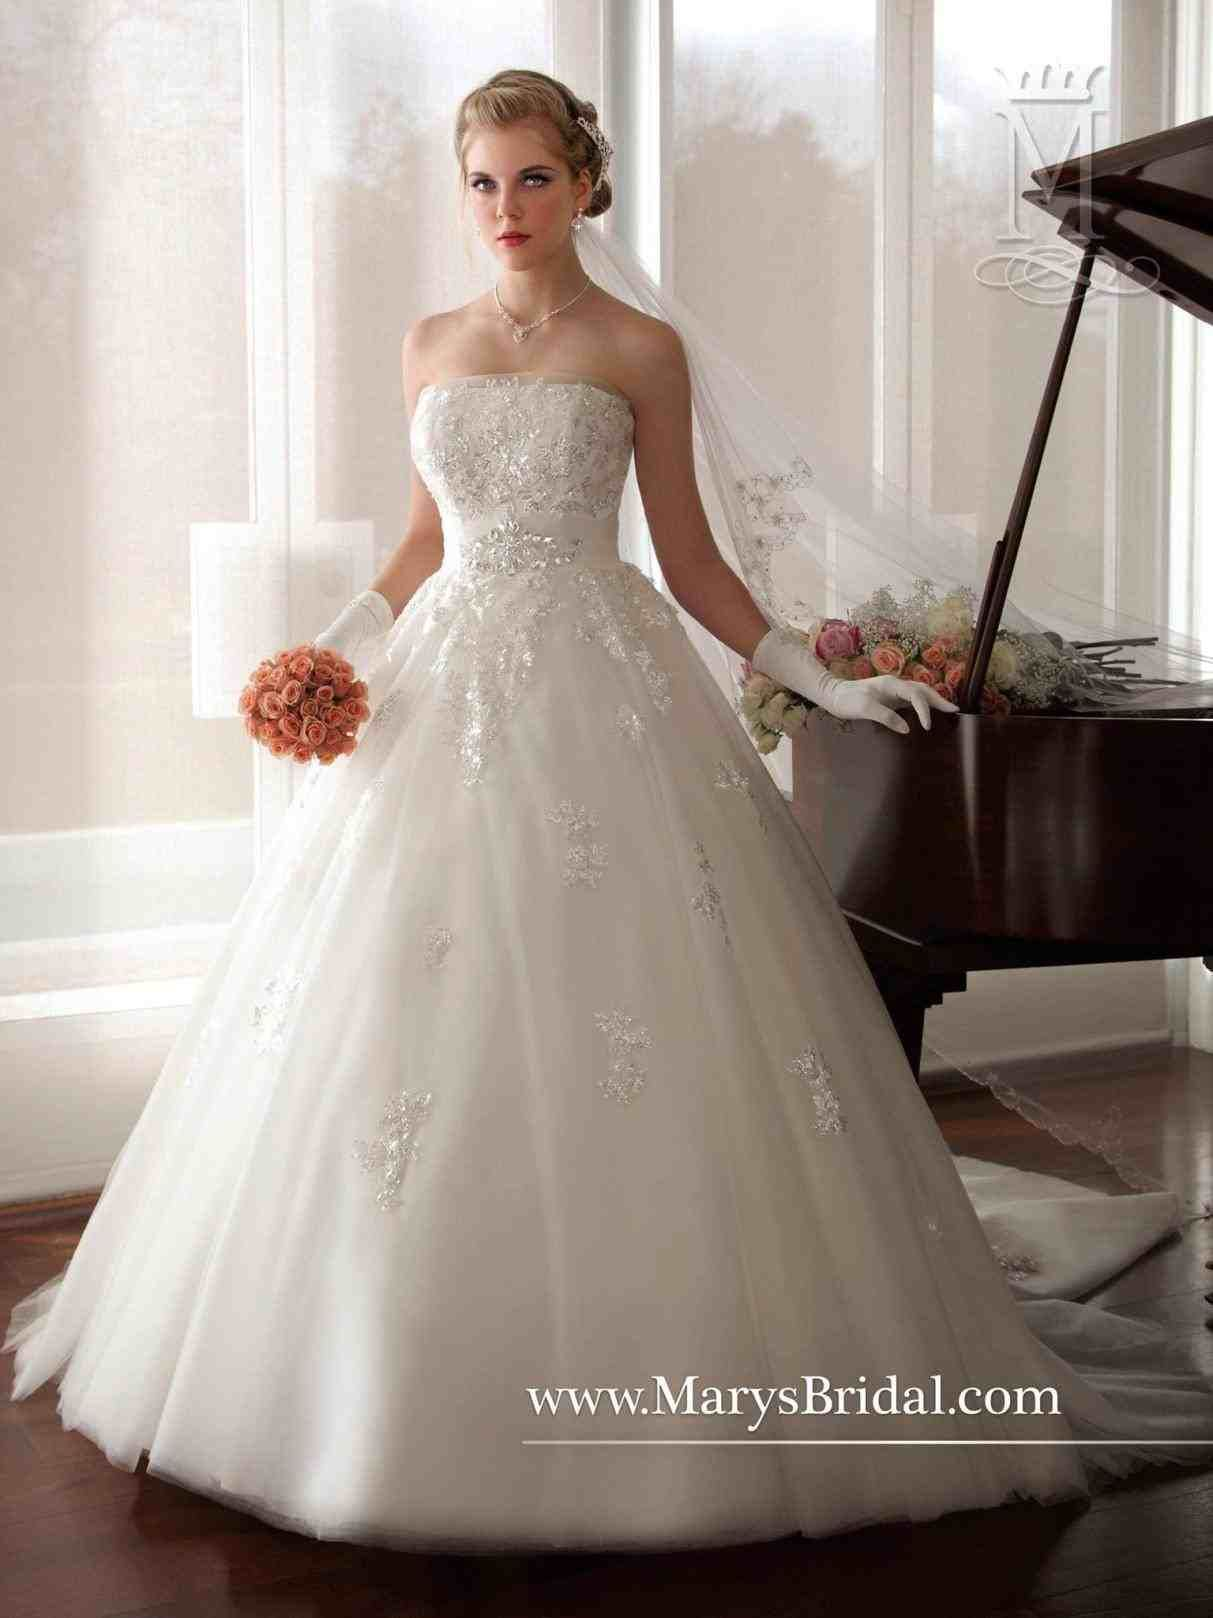 Wedding dresses with lots of rhinestones  ball gown wedding dresses with rhinestones  Weddings  Pinterest